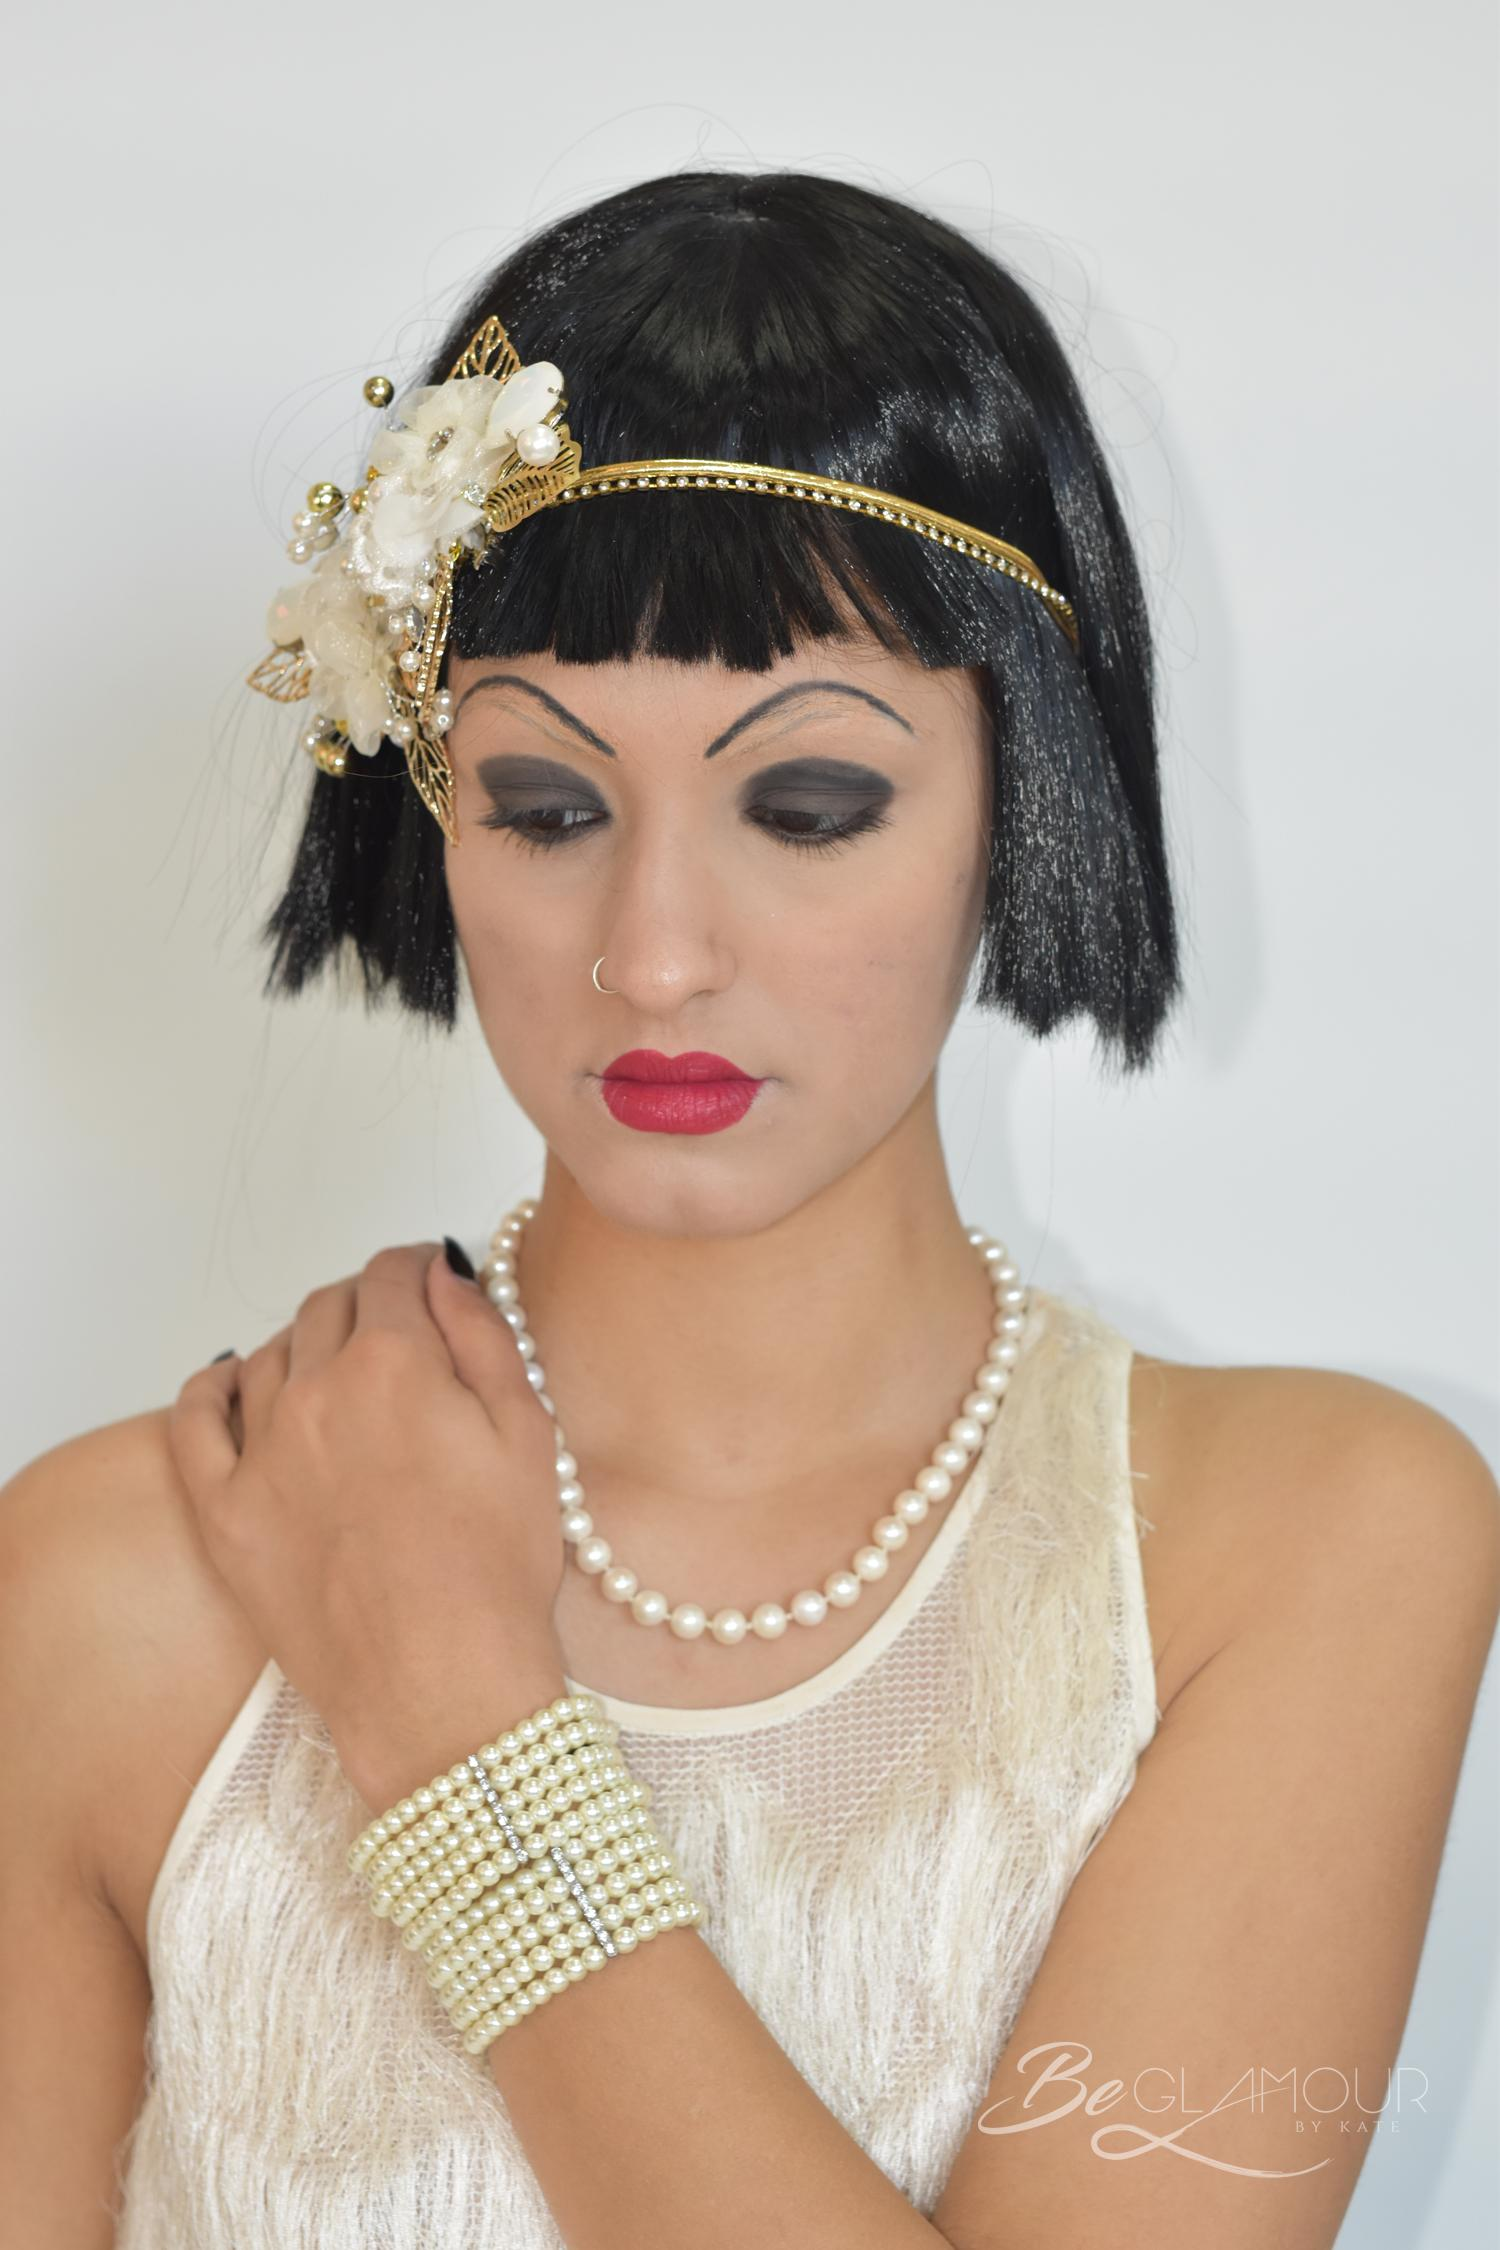 The make up looks of the 1920's